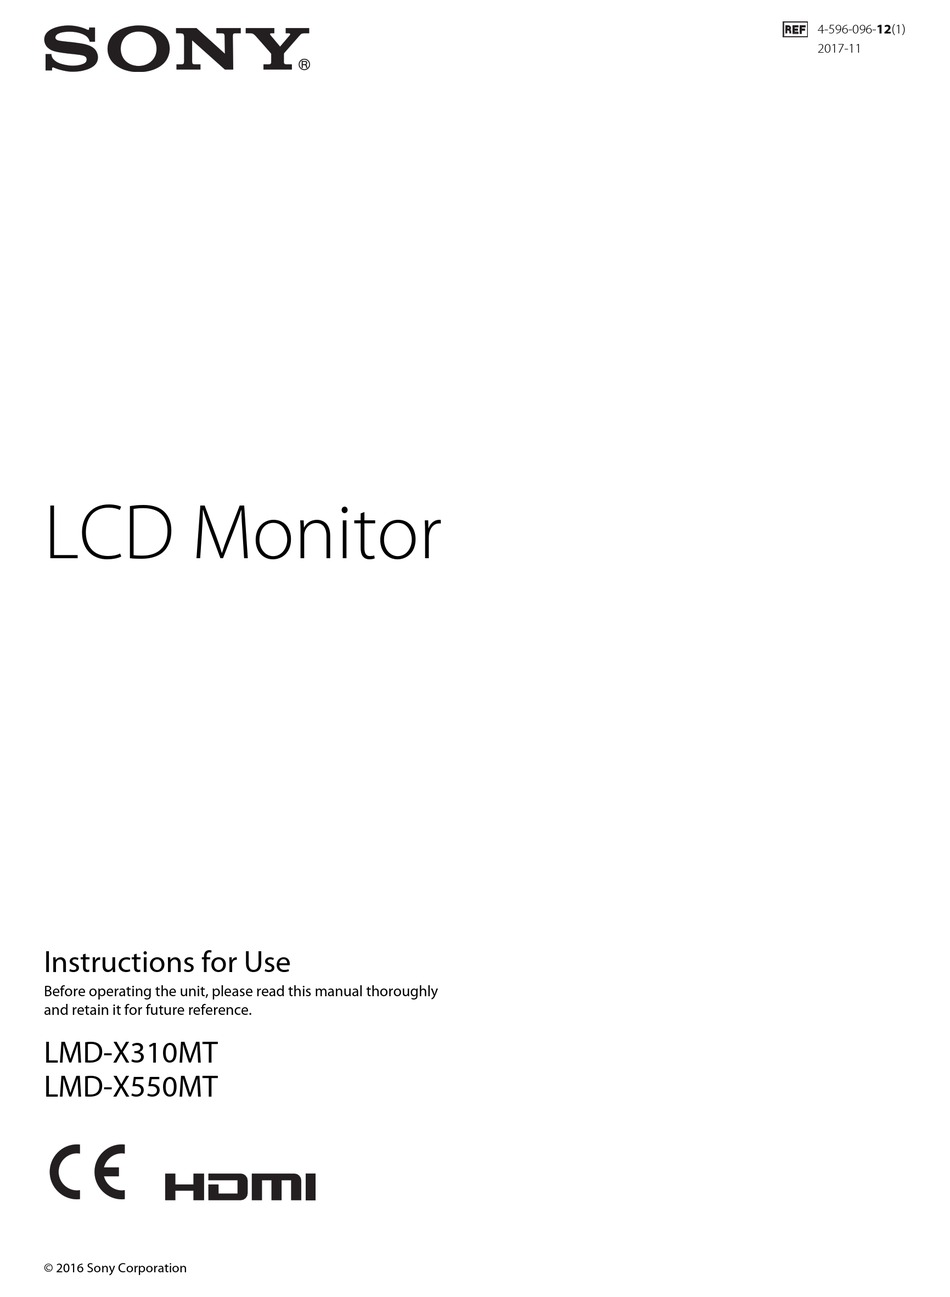 Sony Lmd X310mt Instructions For Use Manual Pdf Download Manualslib